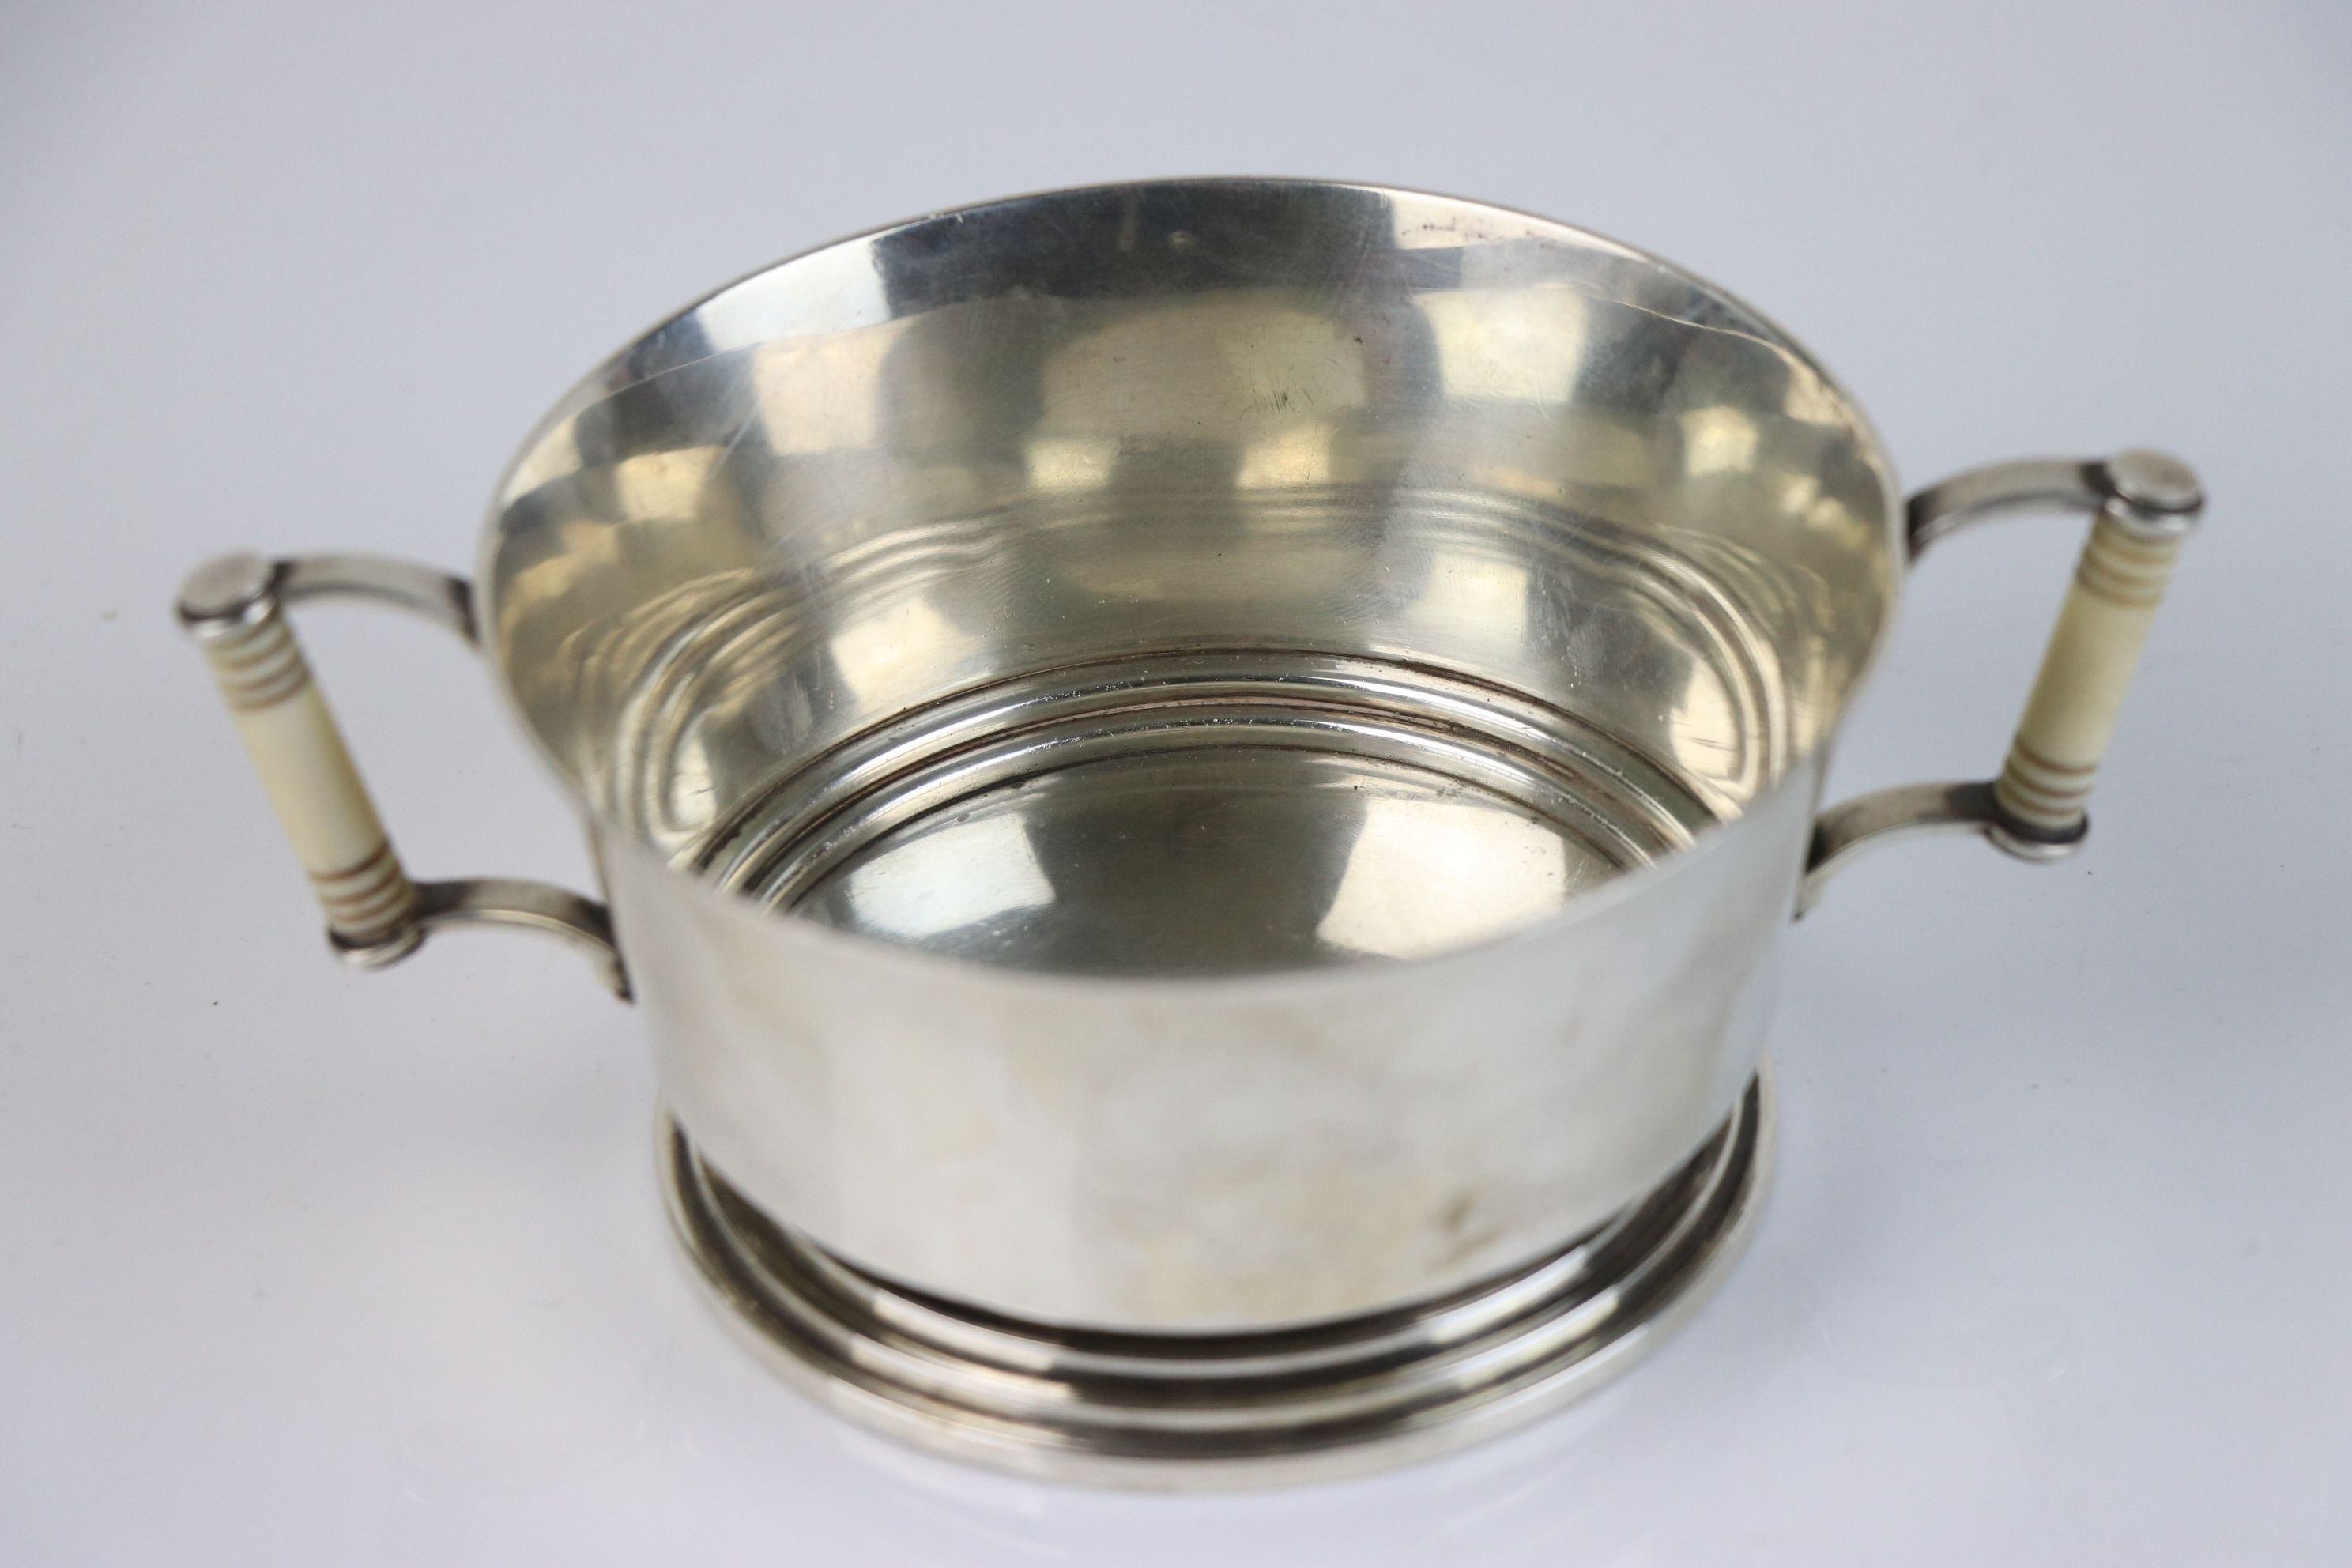 A fully hallmarked Britannia silver double handled christening cup with decorative ivory handles, - Image 2 of 5